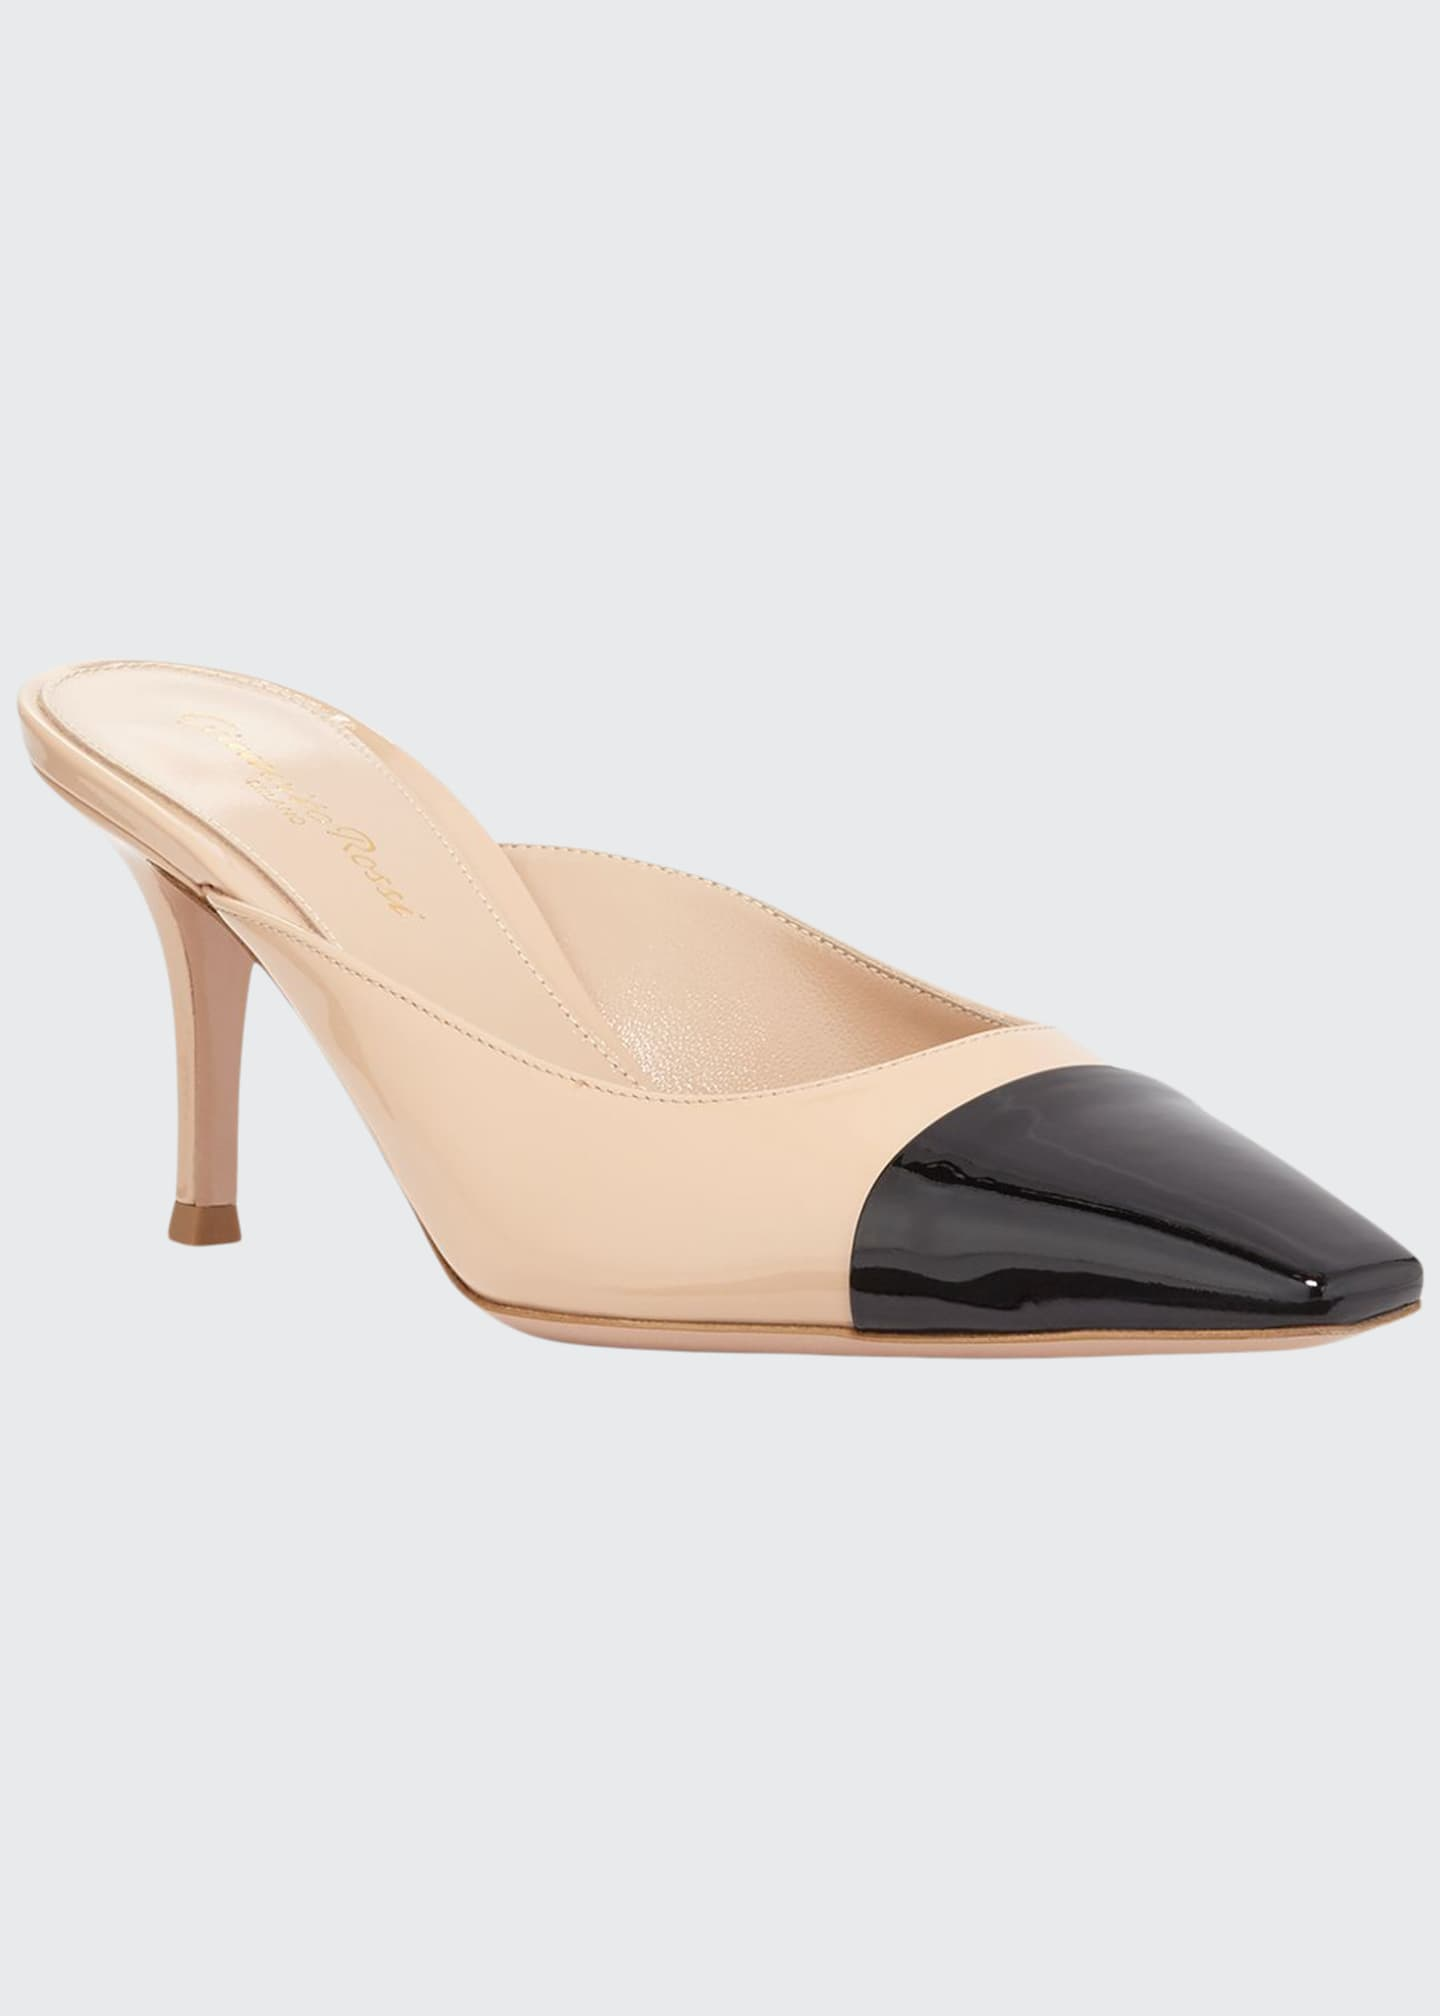 Gianvito Rossi Patent Leather Cap-Toe Mules